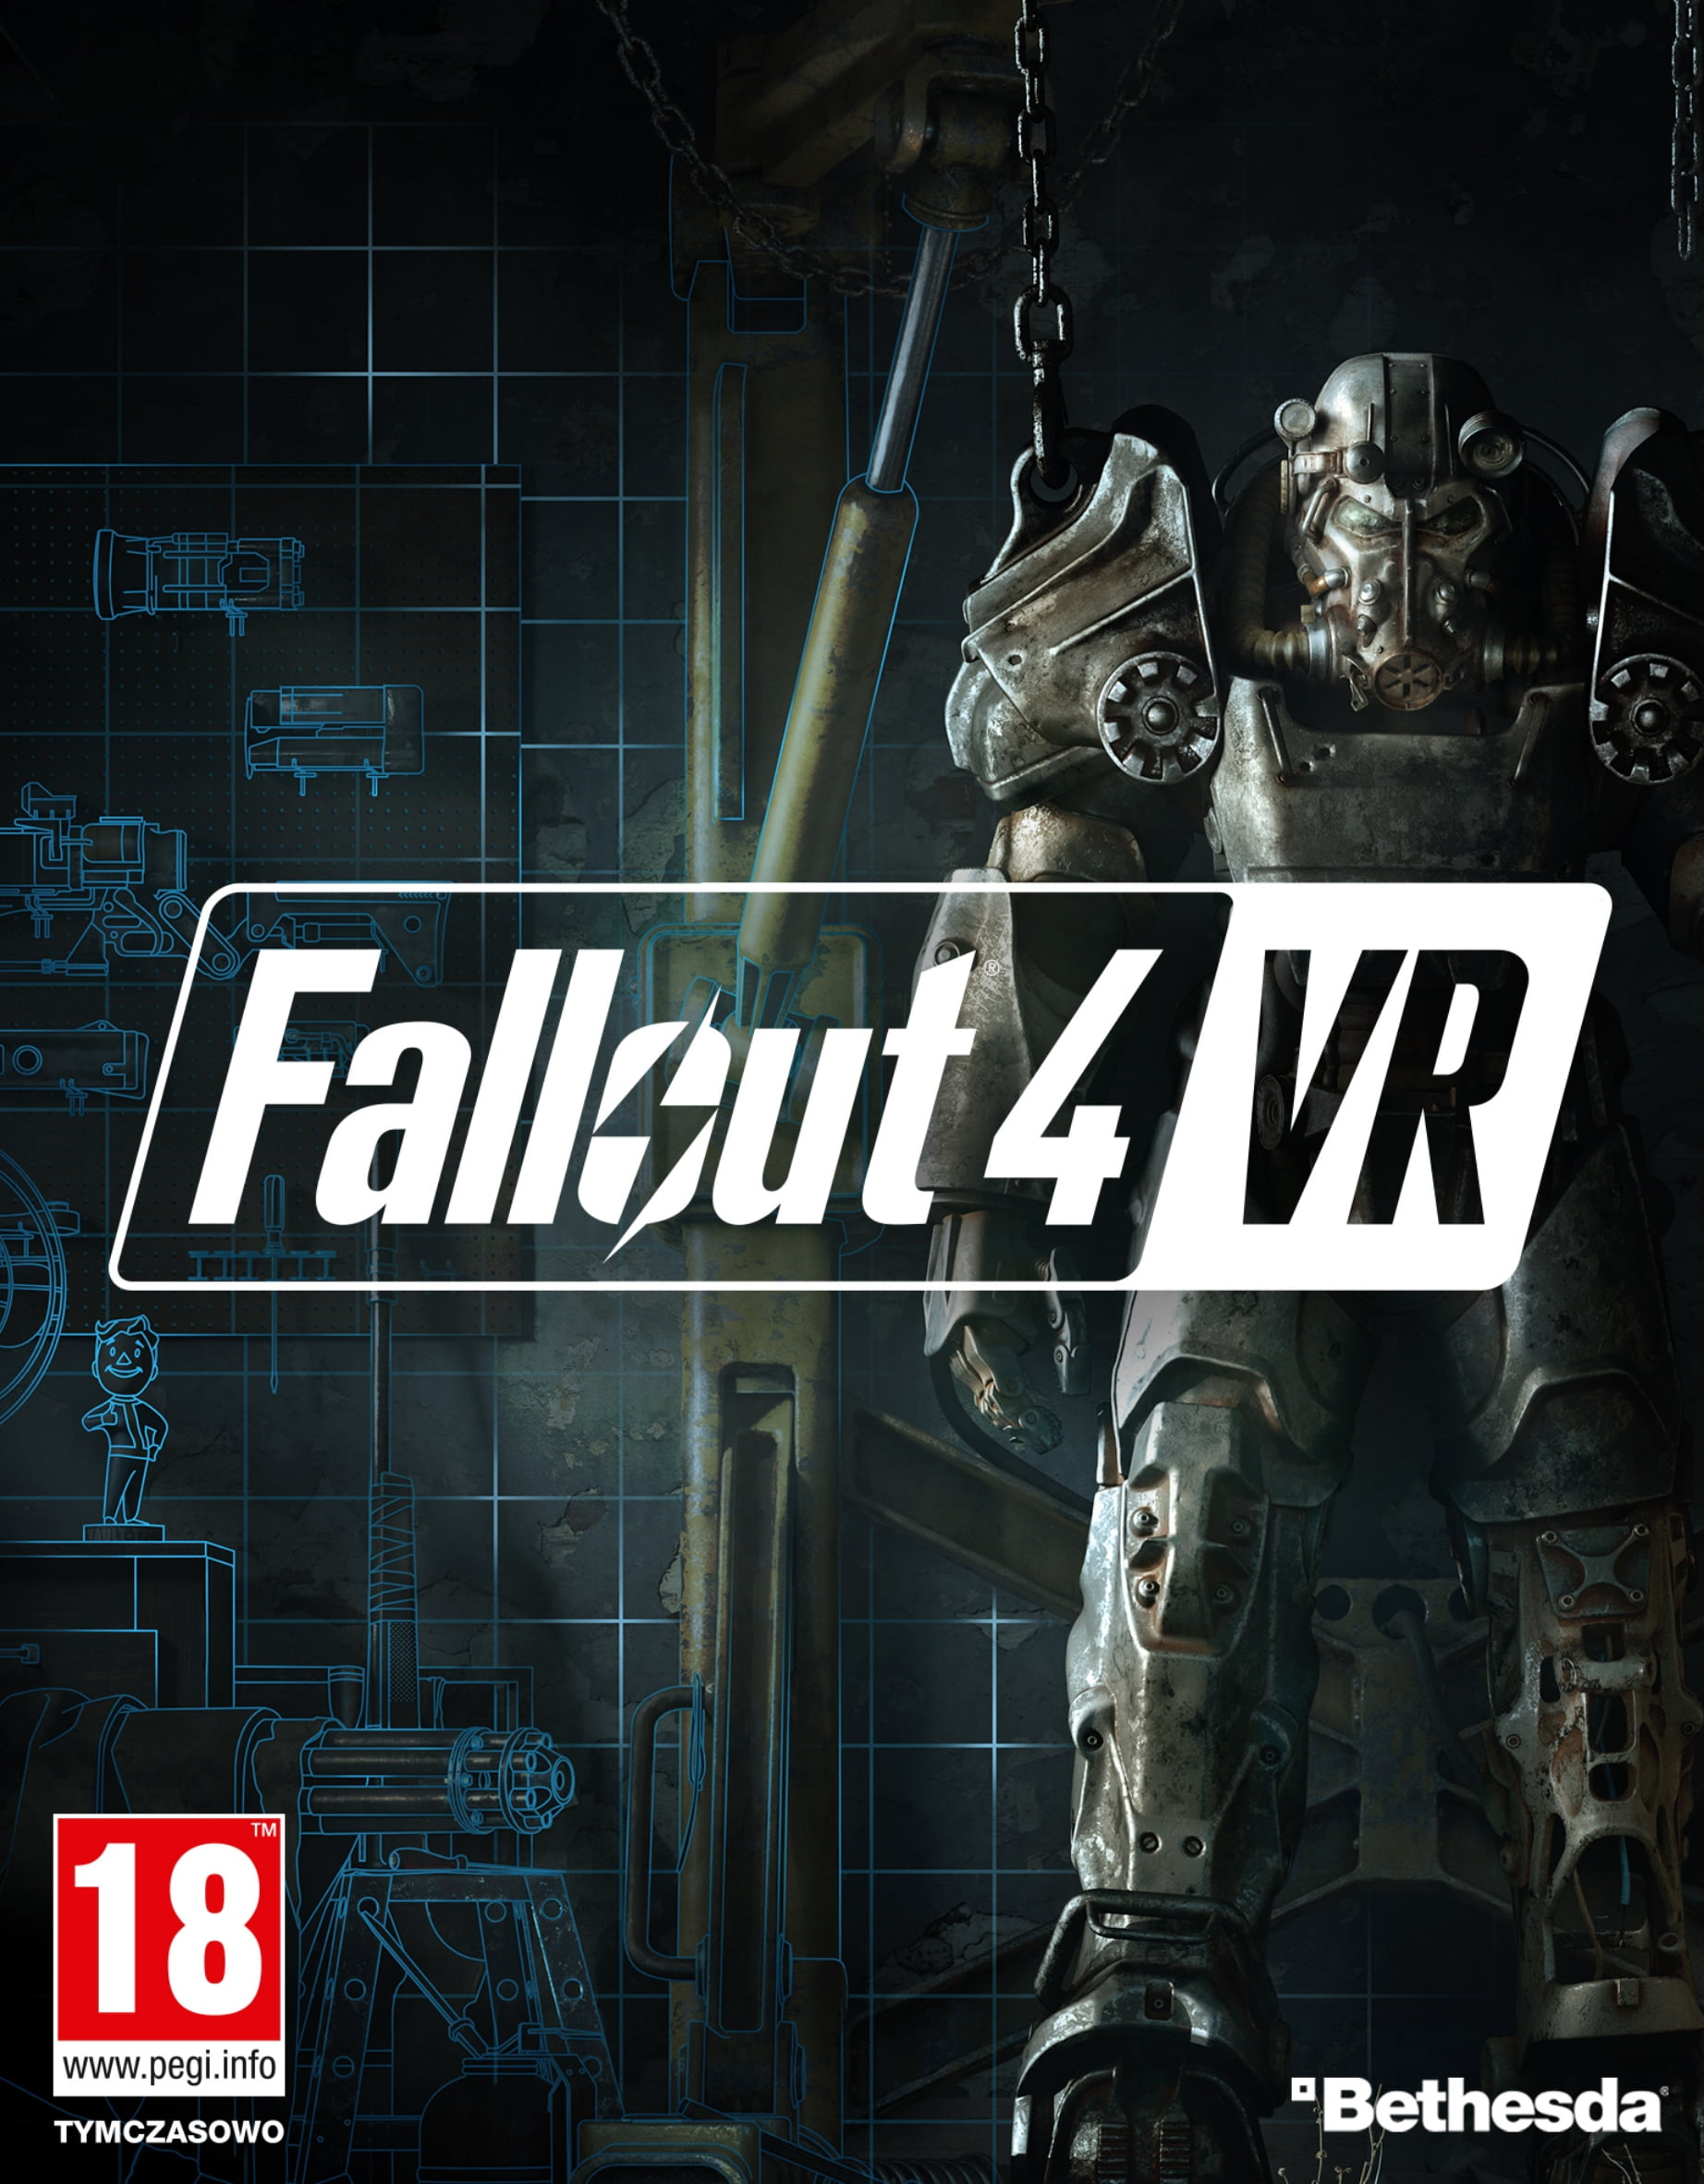 Bethesda Fallout 4 VR video game PC Basic Multilingual